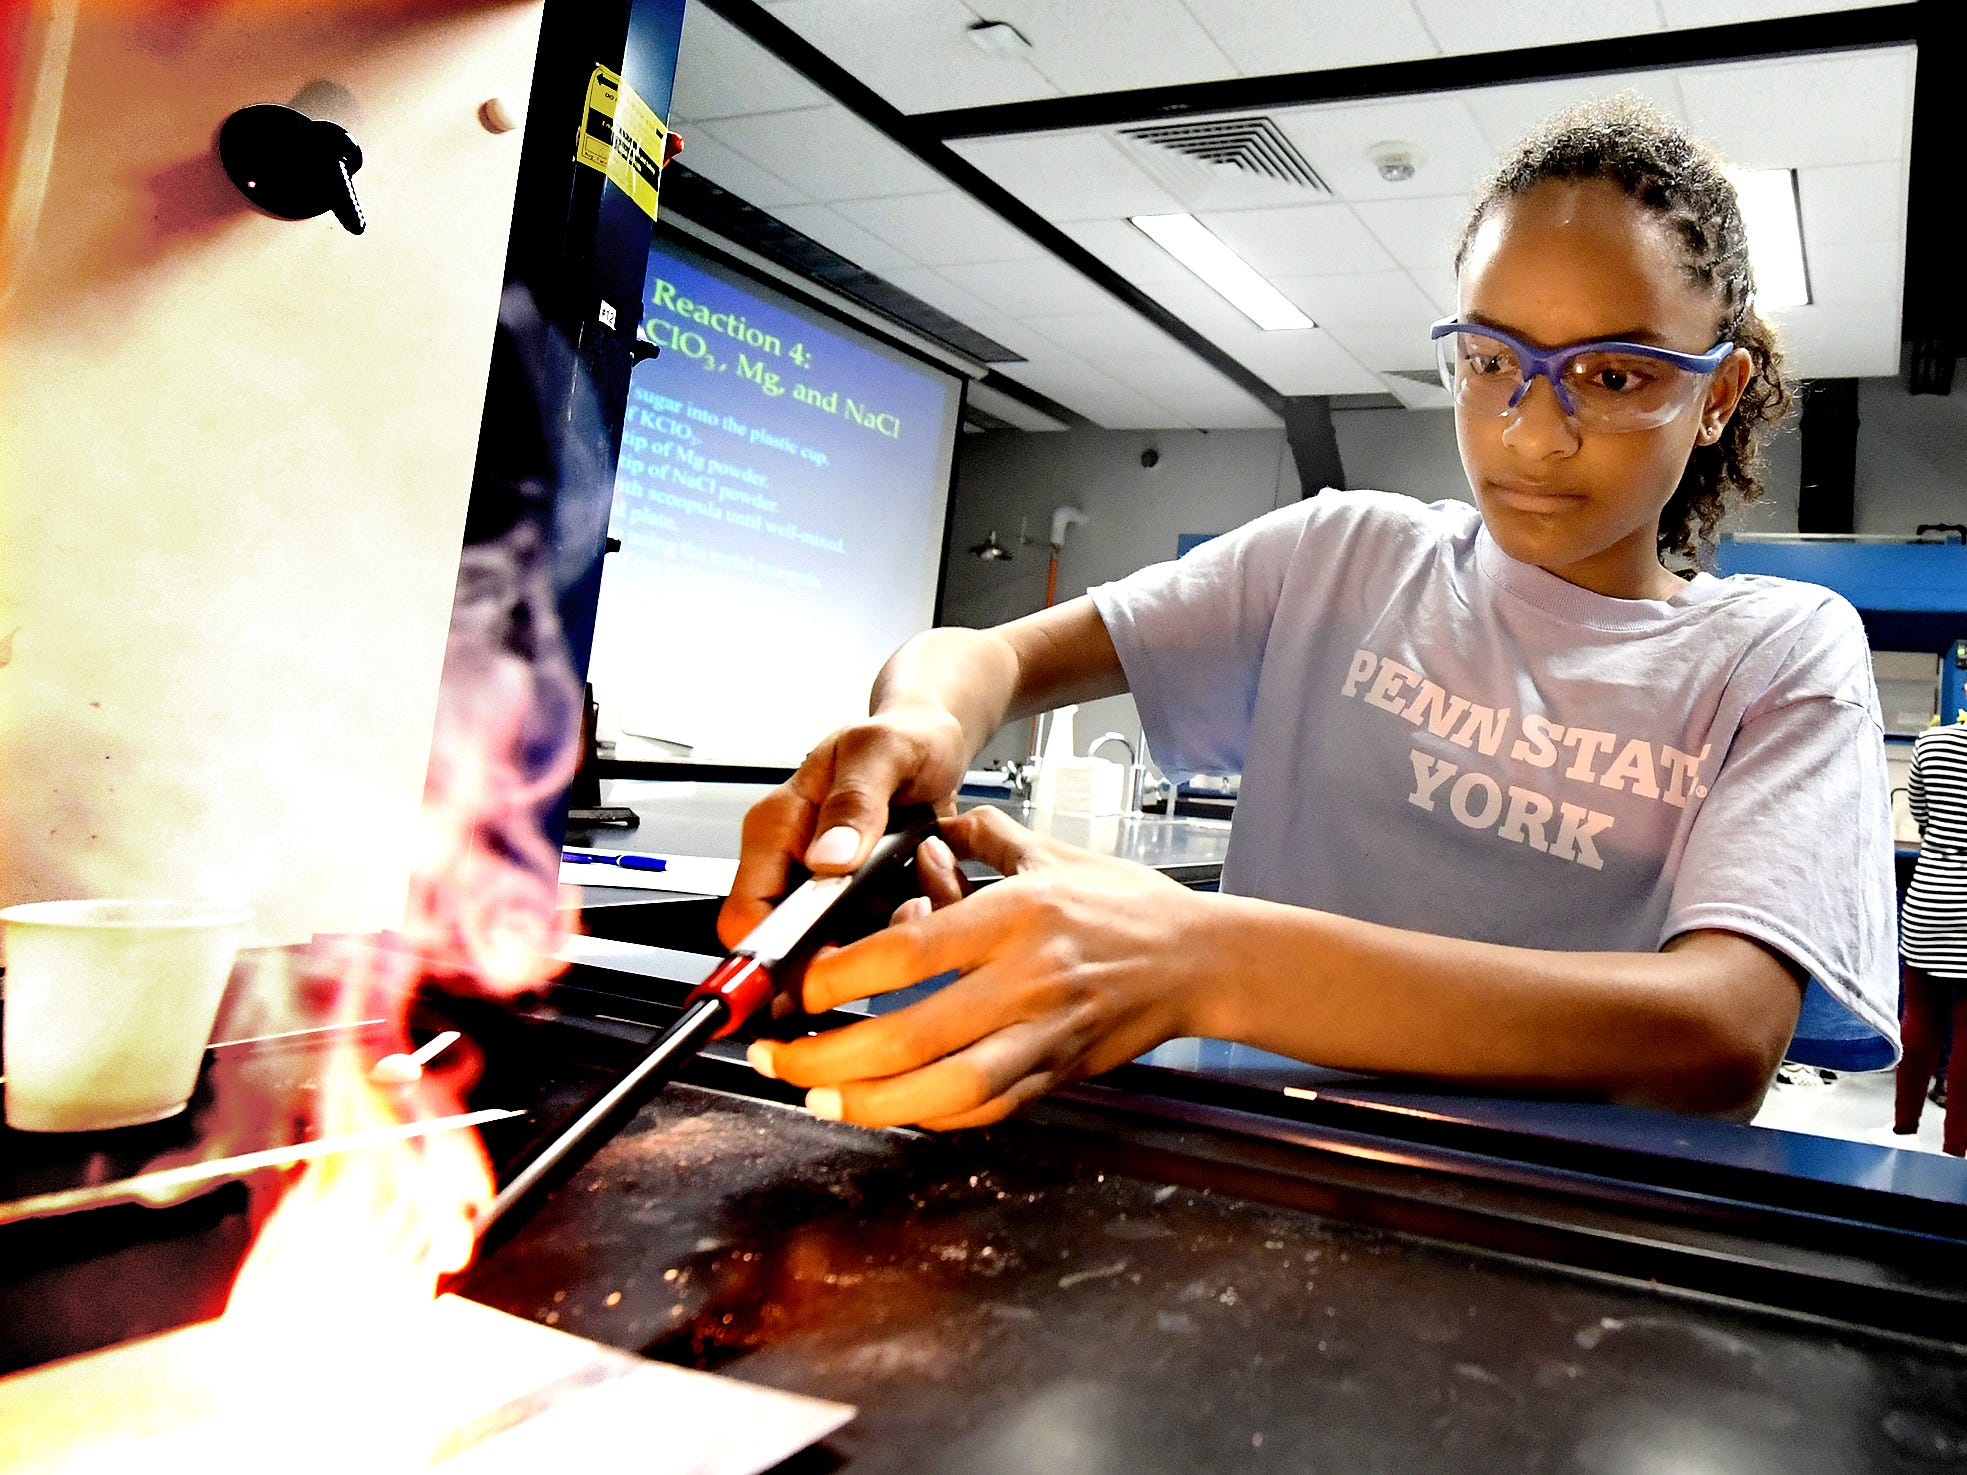 Harrisburg Academy student Sarah Henry lights a mixture during the Sparkling with Chemistry workshop at the Pathways to Your Future: Exploring STEAM Careers event at Penn State York Friday, May 10, 2019. Over 200 seventh-grade girls from 28 area schools participated in the program which highlighted science, technology, engineering, art, and mathematics (STEAM) careers. Industry leaders administered the workshops during the program, which is in its 23rd year. Bill Kalina photo